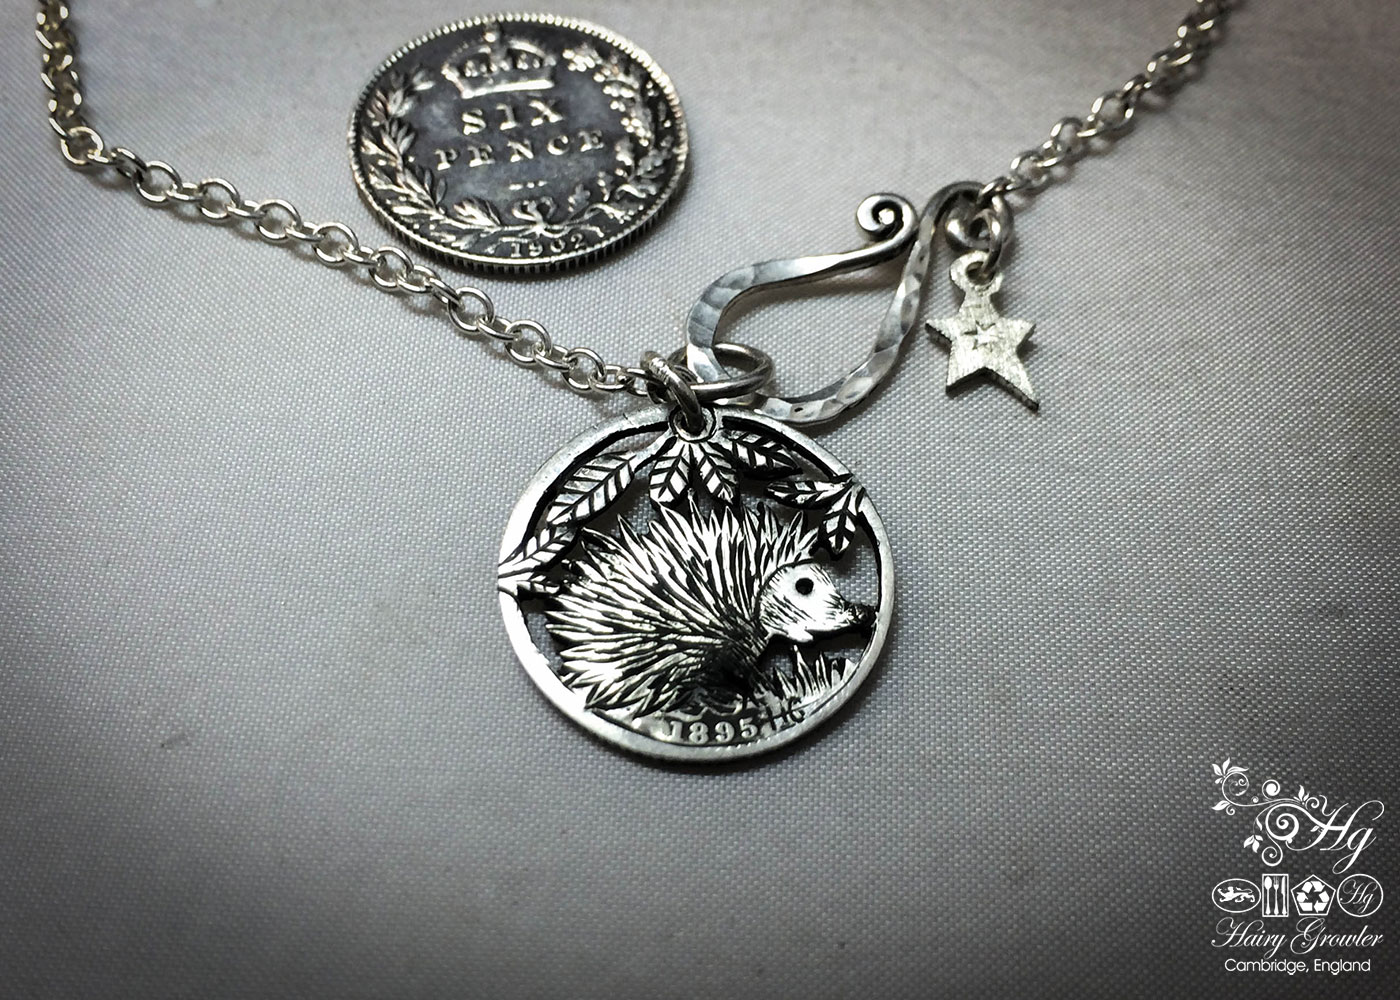 Handcrafted and recycled silver sixpence coin hedgehog pendant necklace